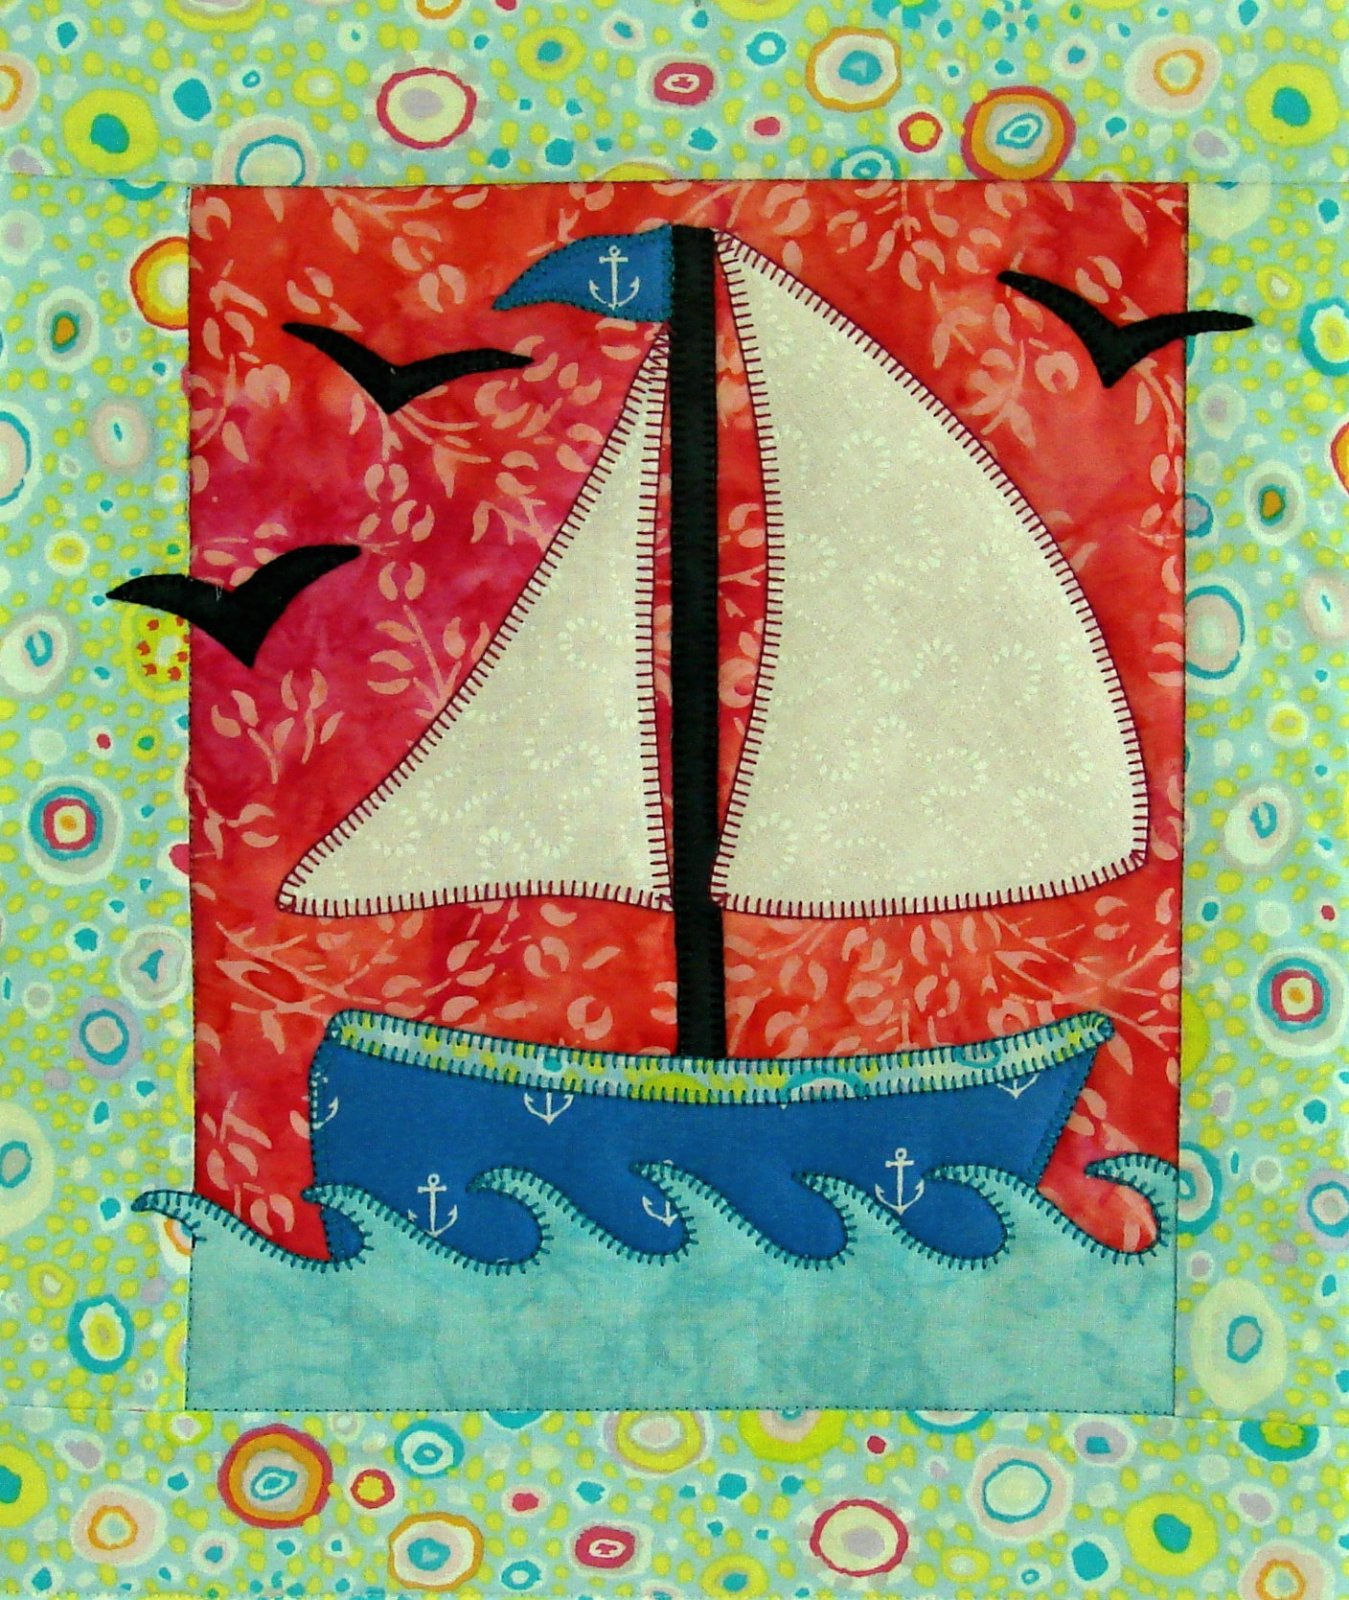 SAIL AWAY PATTERN - JUNE